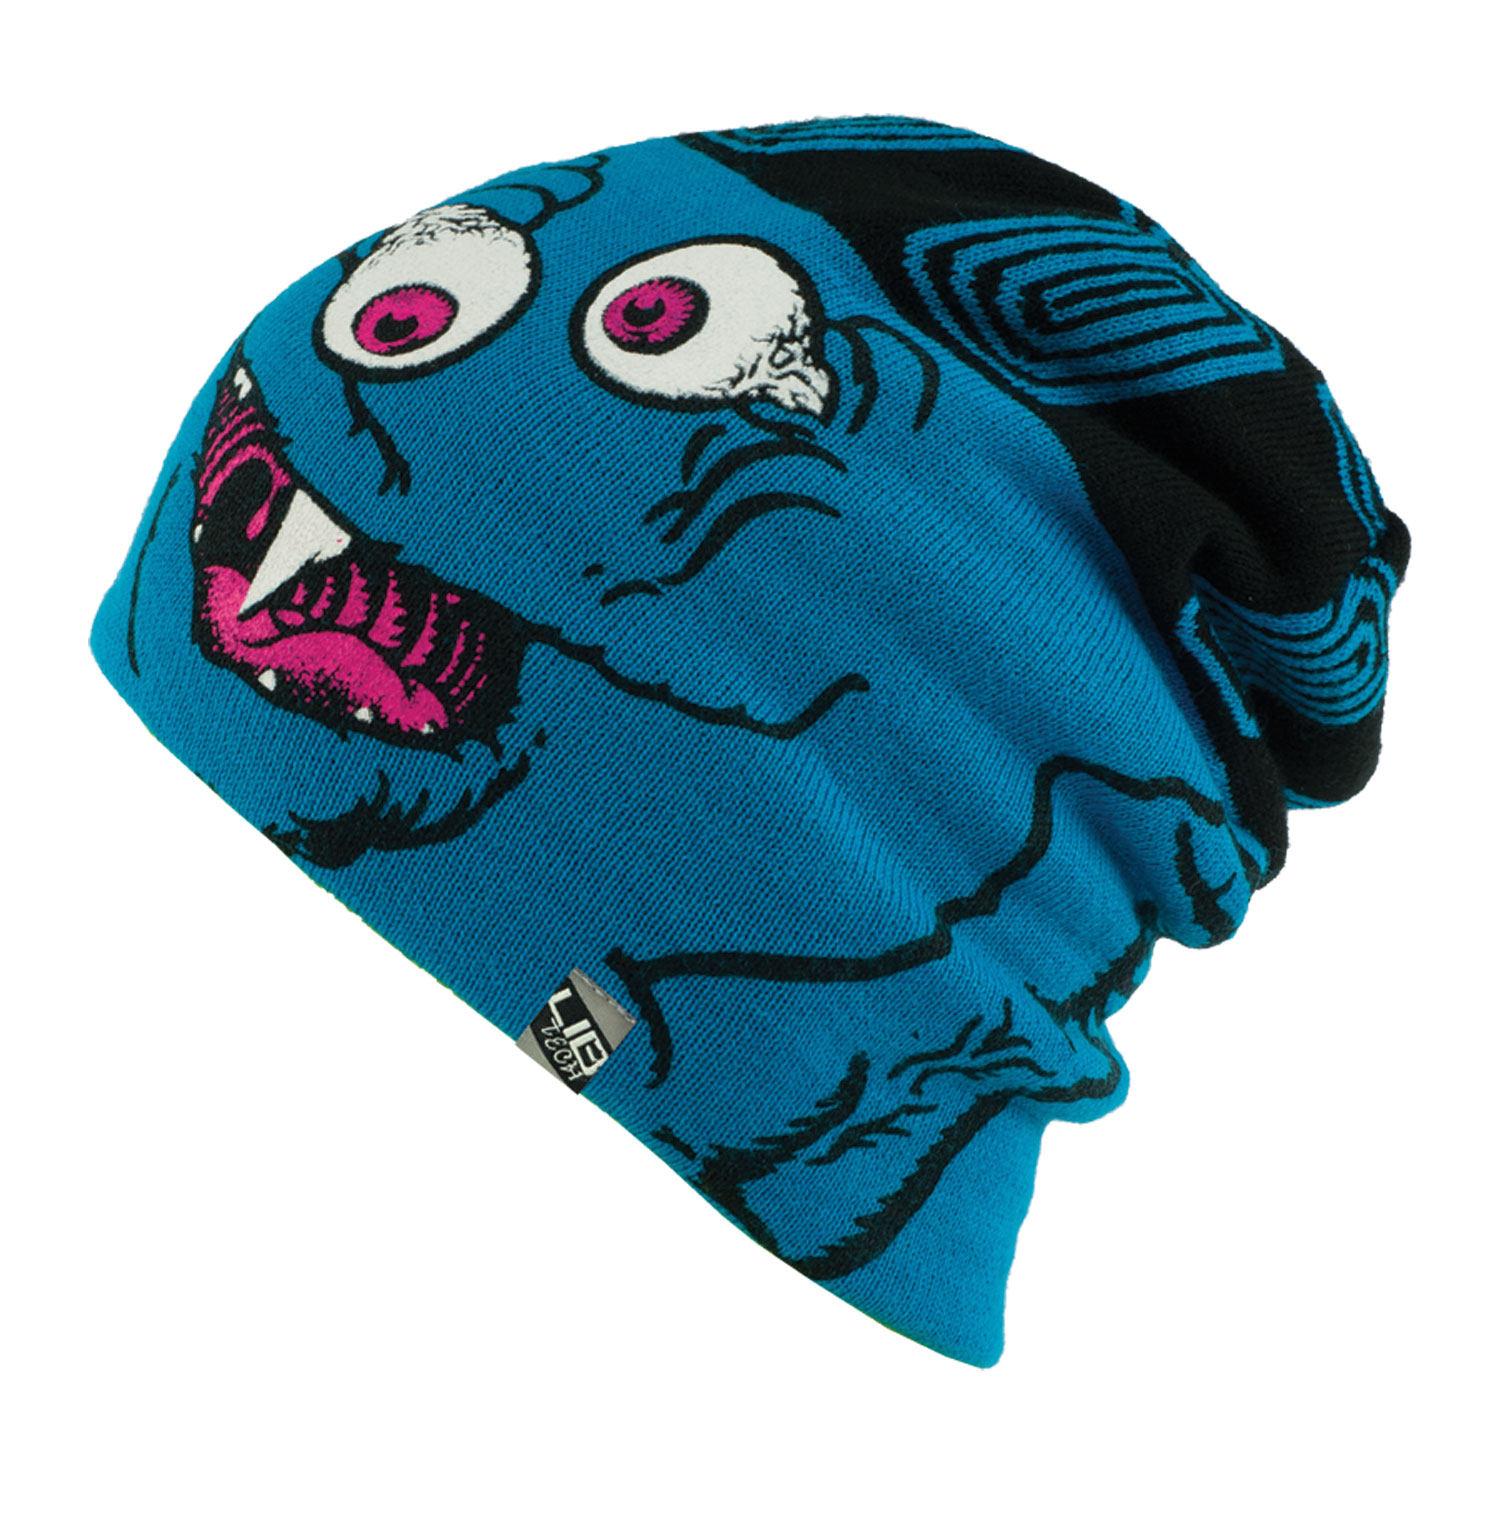 Key Features of the Lib Tech Reversible Booger Beanie:  100% Acrylic  Reversible beanie with screen print and jacquard FD  Art by Matt French - $14.95